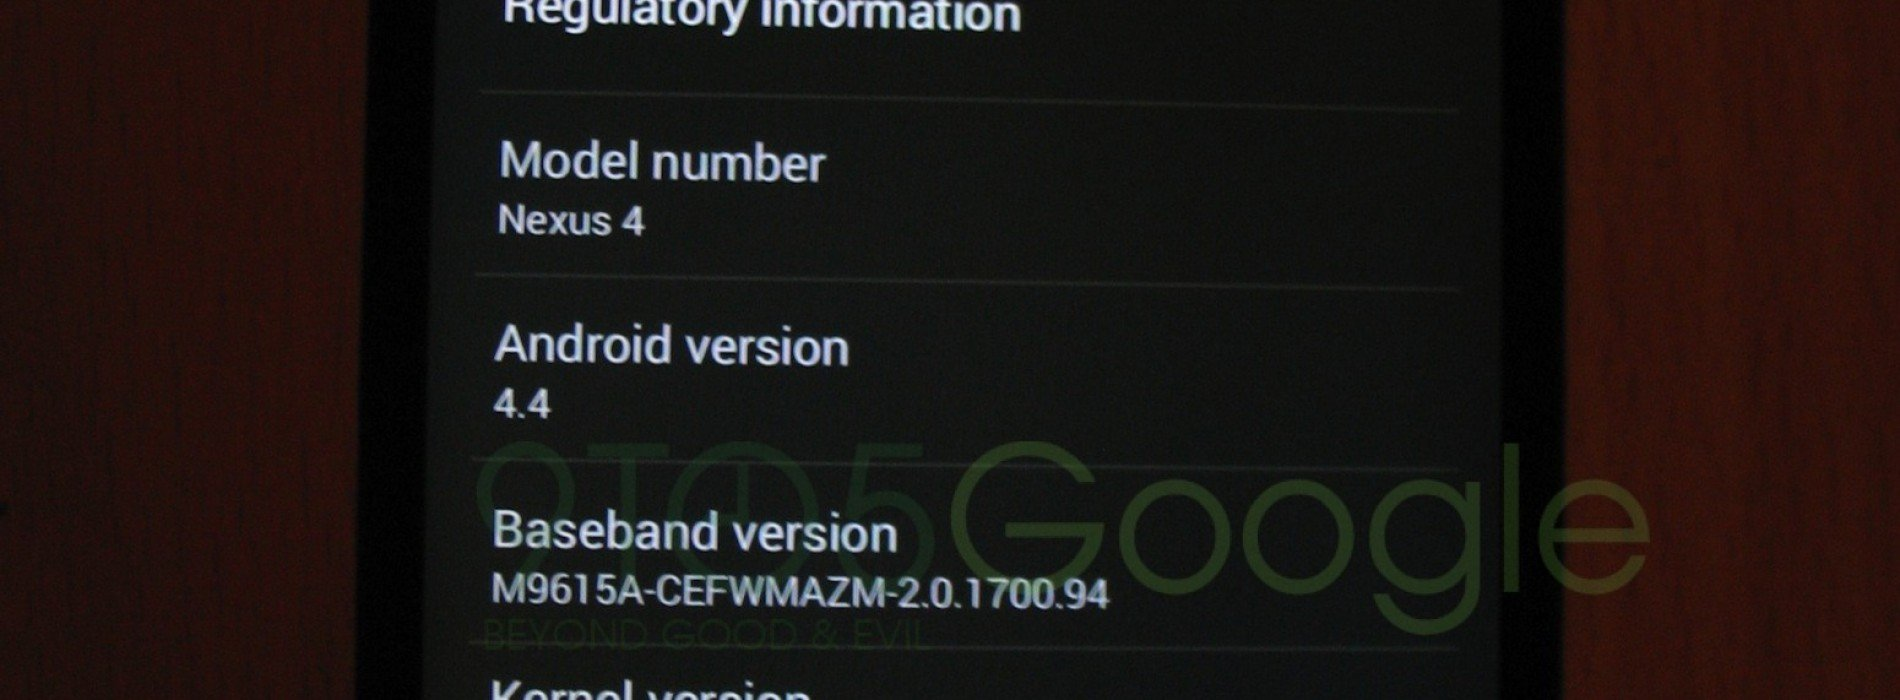 Alleged Android 4.4 KitKat screens emerge over weekend